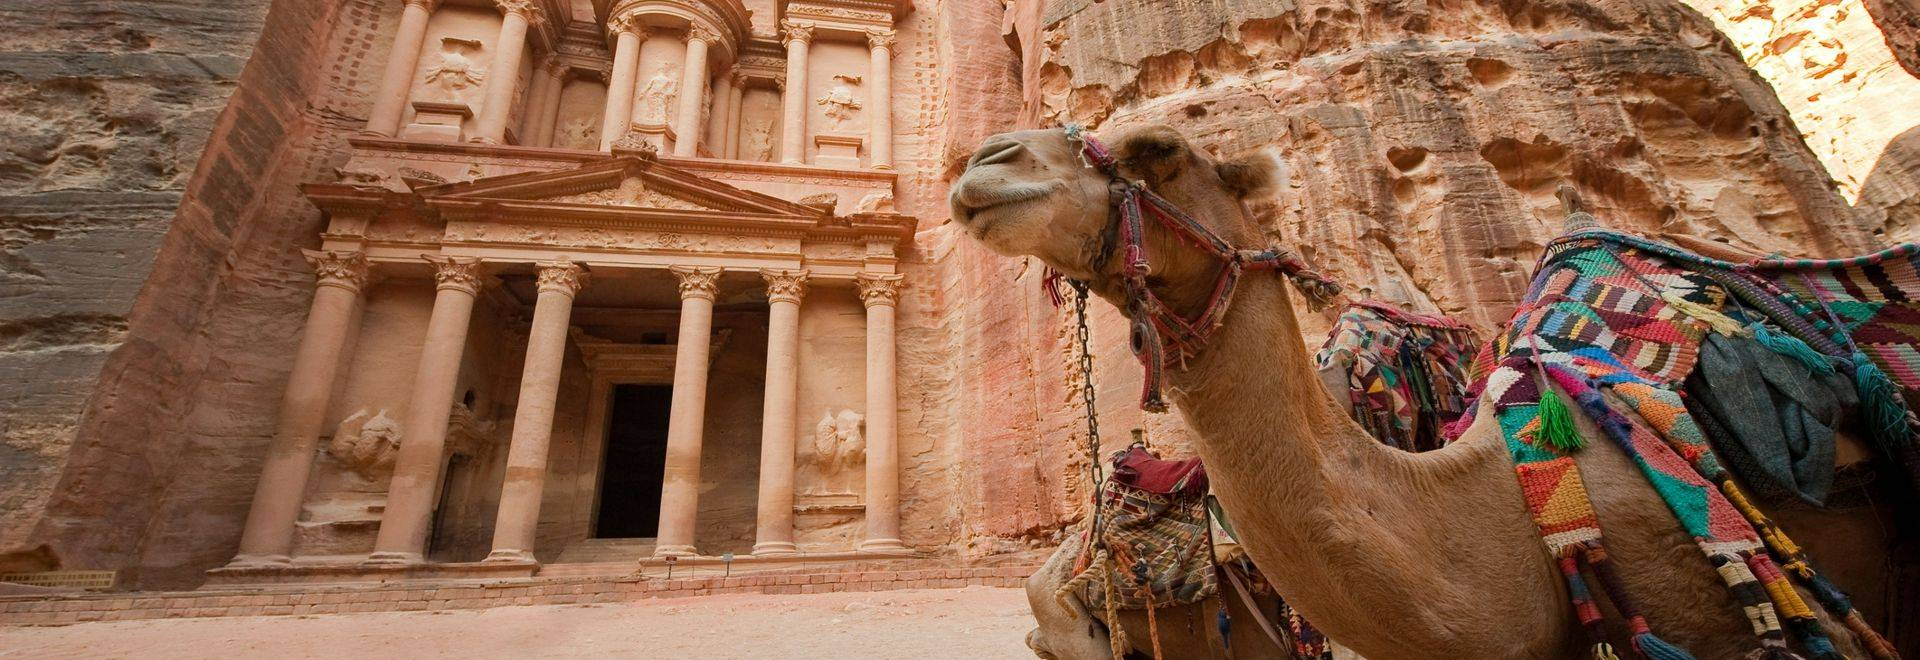 Camel in front of the treasury or Al Khazna, it is the most magnificant and famous facade in Petra Jordan, it is 40 meters h…